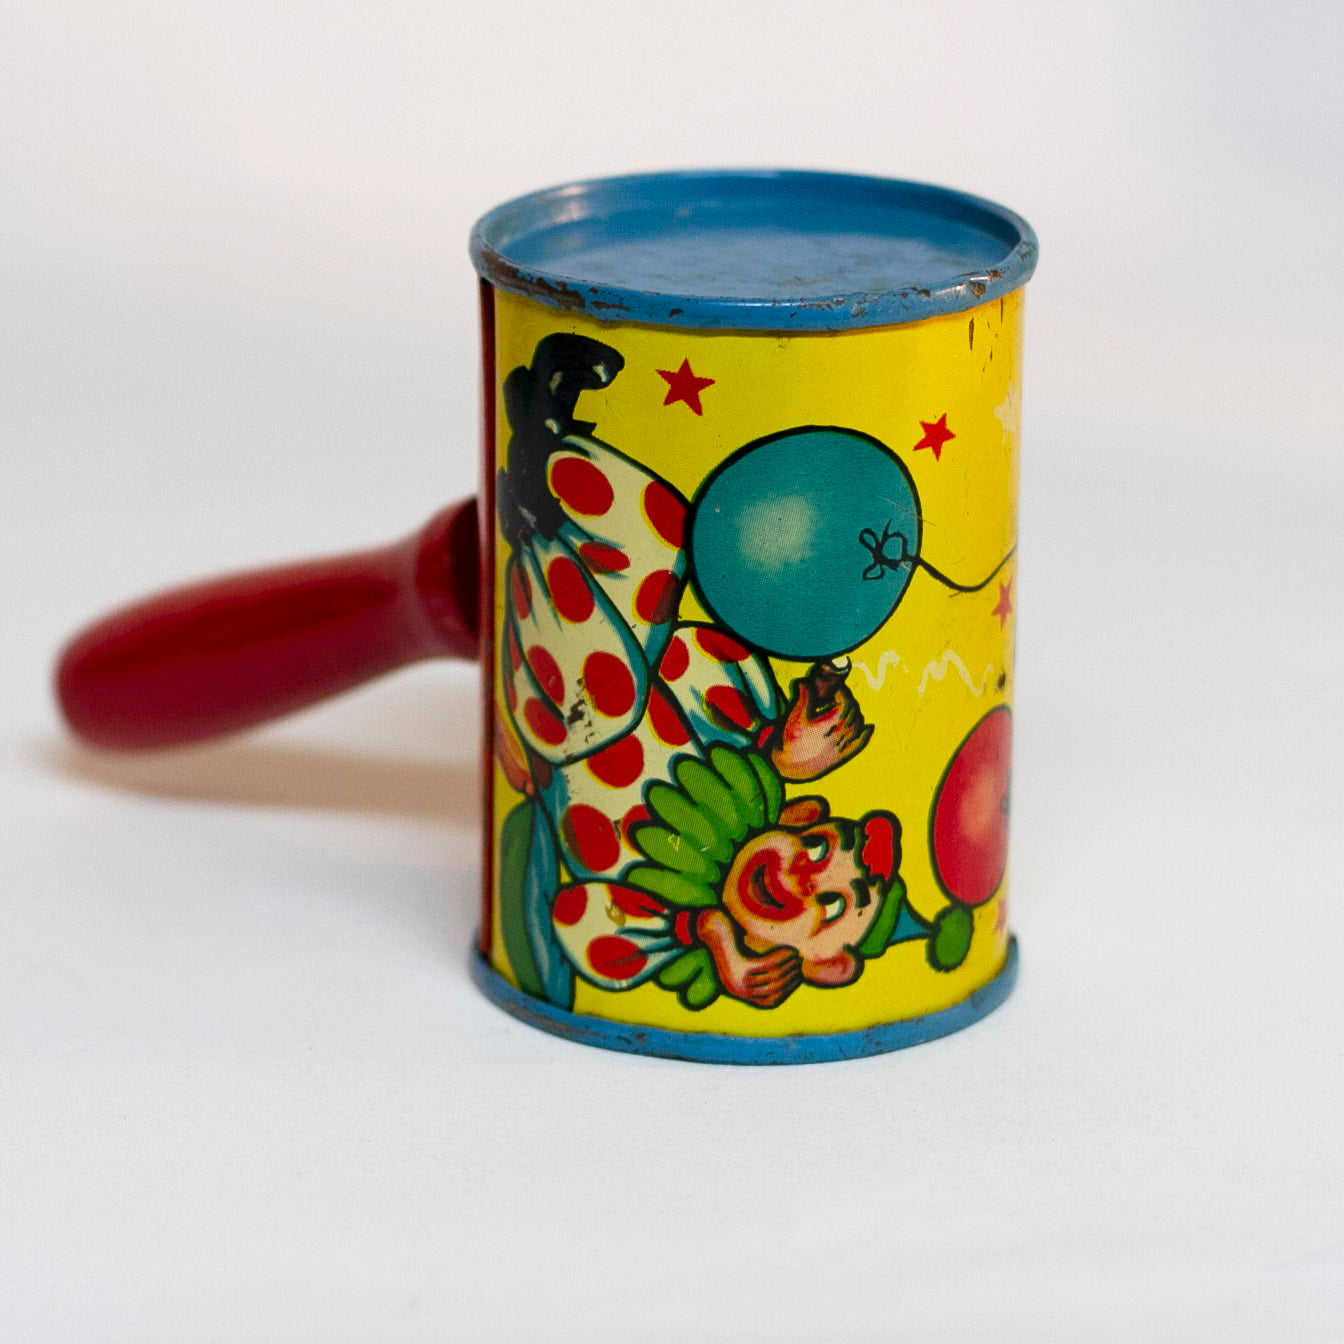 "This is an older style tin LITHOGRAPH CLOWN NOISEMAKER that likely dates to the 1930s or 1940s is in the shape of a small can. The lithograph depicts two clowns, one dressed in a white and red polka-dot clown suit and the other is ""toothless"" and dressed in blue plaid. Scene background in yellow. A red wooden handle is"